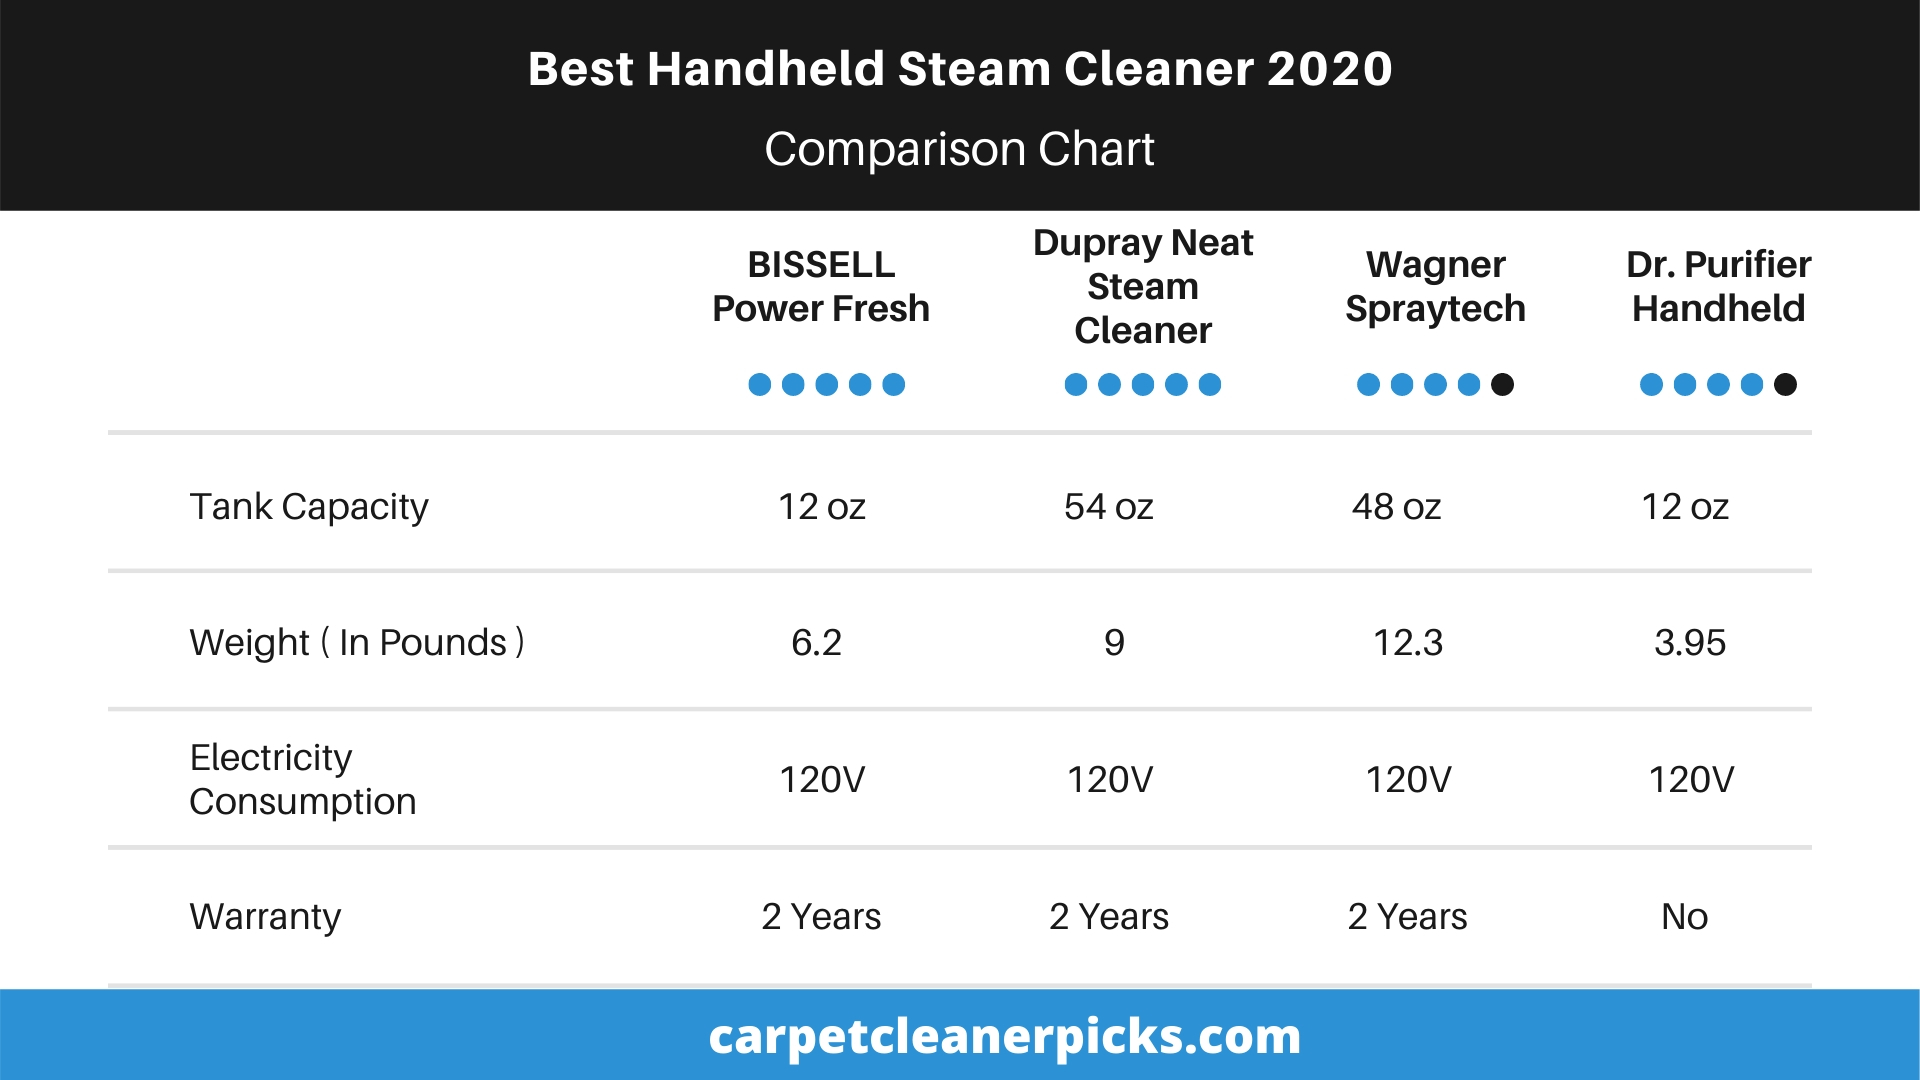 Comparison Chart - Best Handheld Steam Cleaner